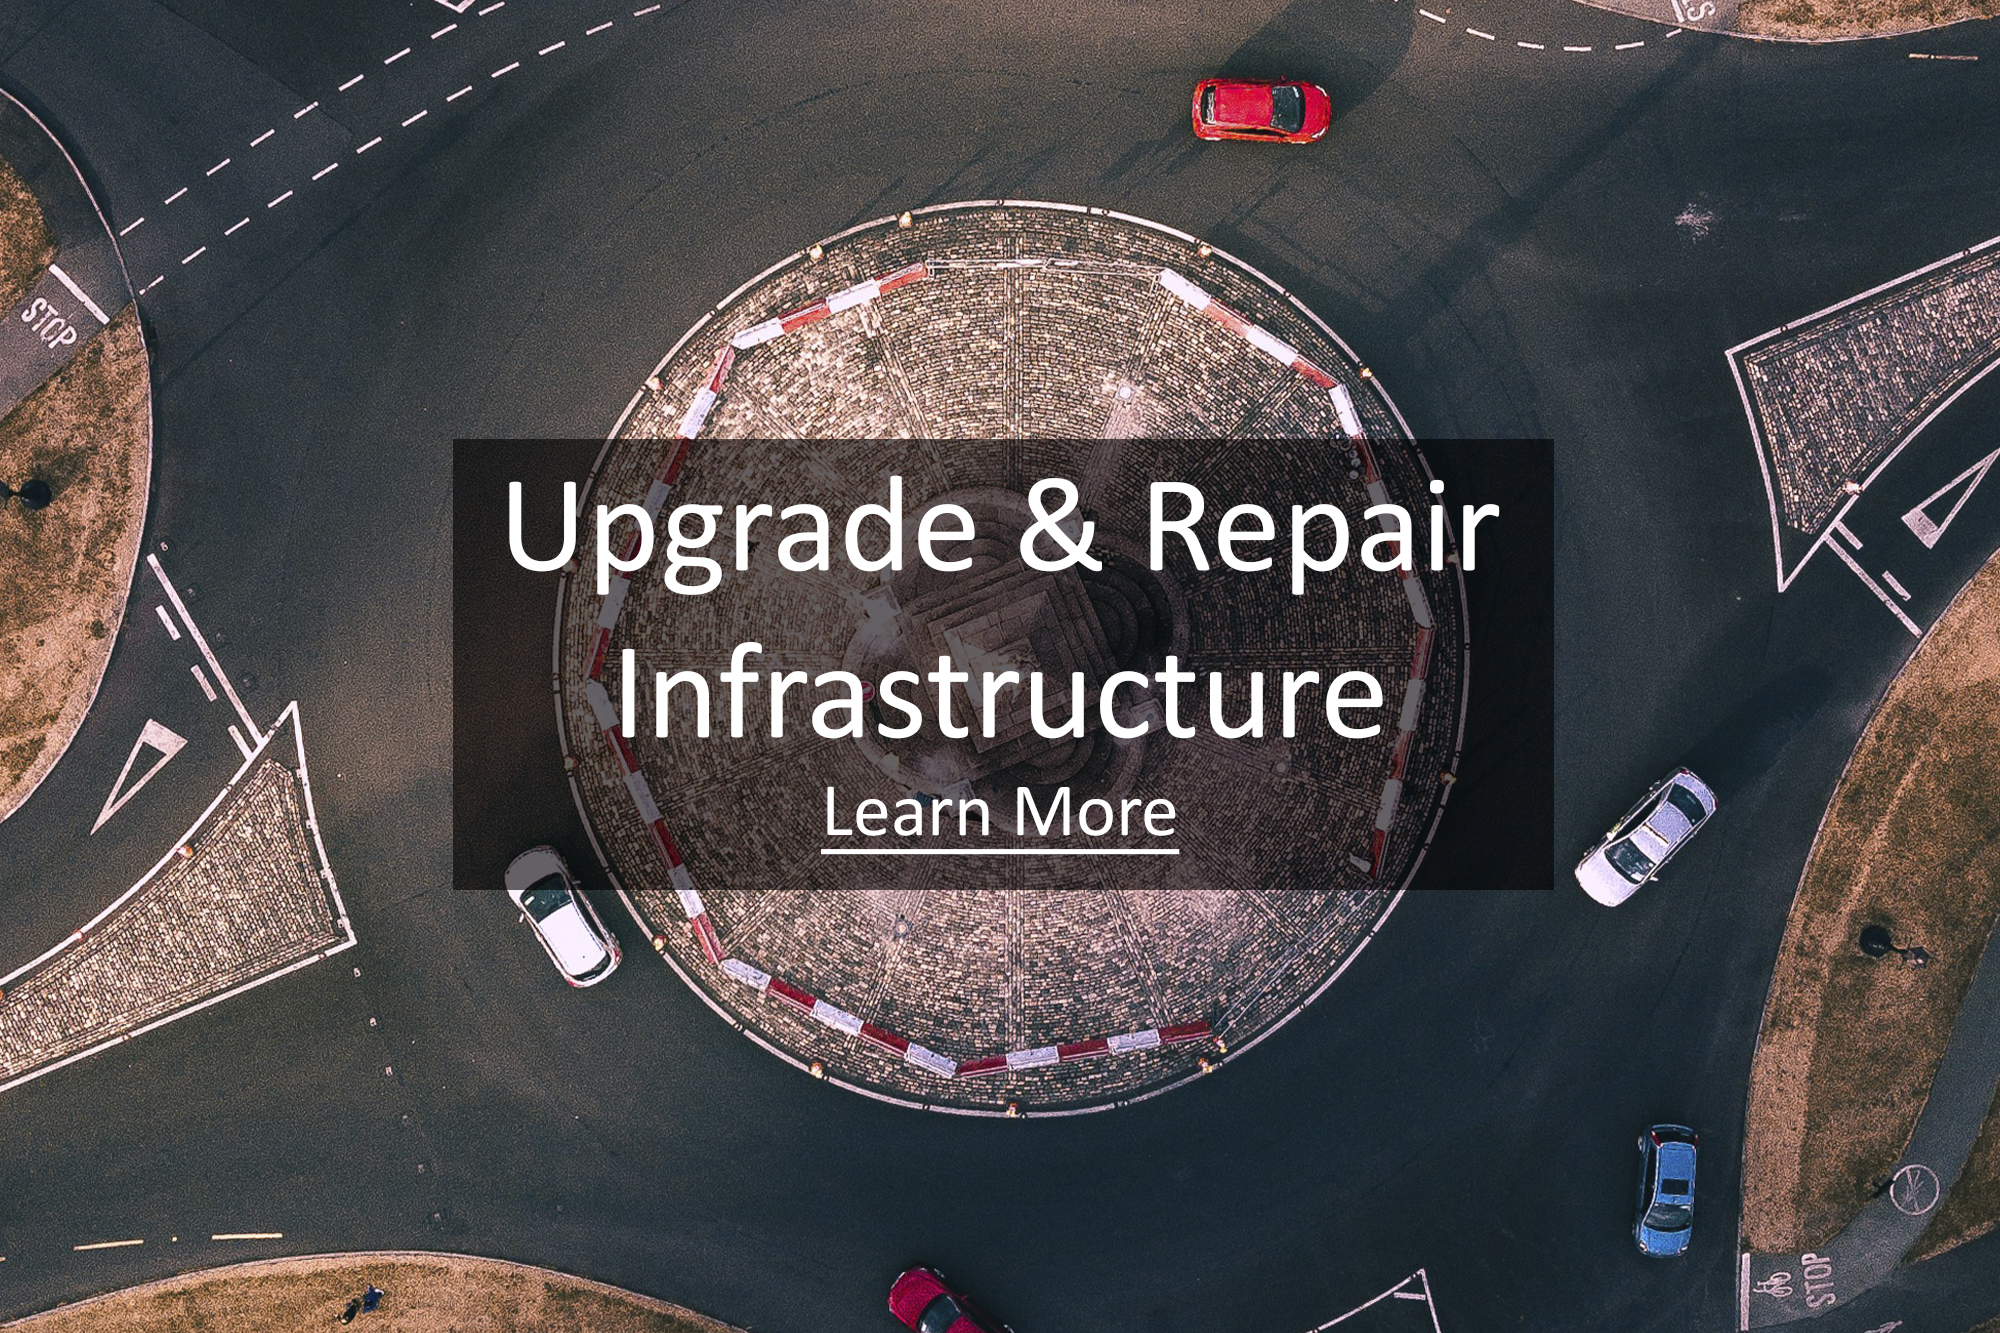 Upgrade and Repair Infrastructue - thumbnail.jpg